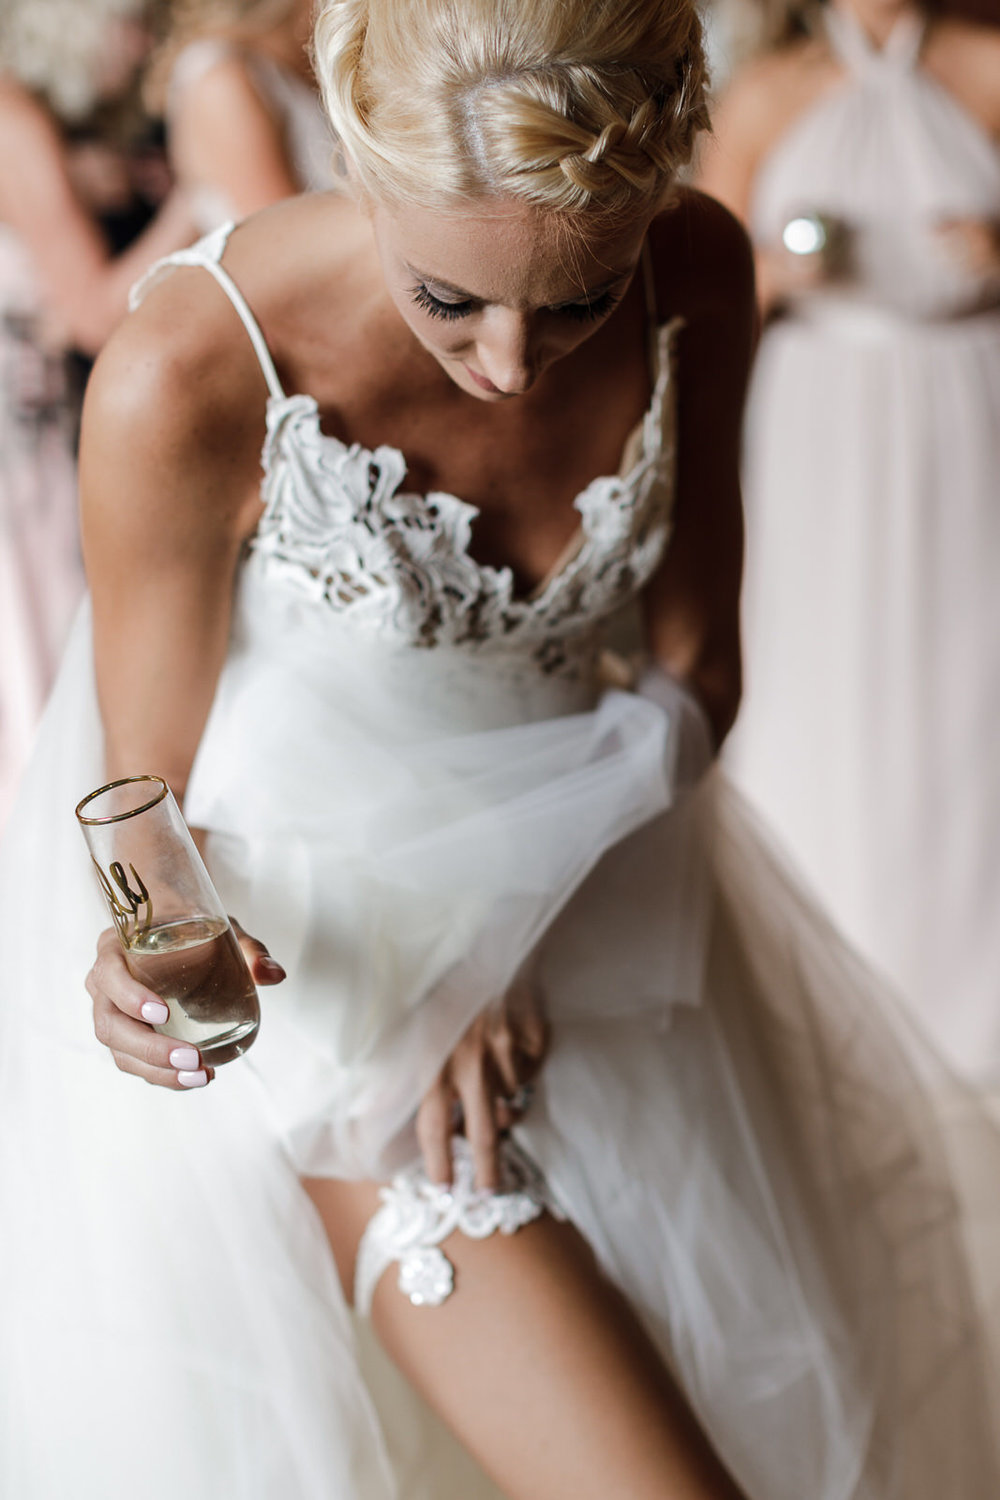 Bride adjusts her garter while holding a glass of champagne before her wedding ceremony at the Addison in Boca Raton, Florida.